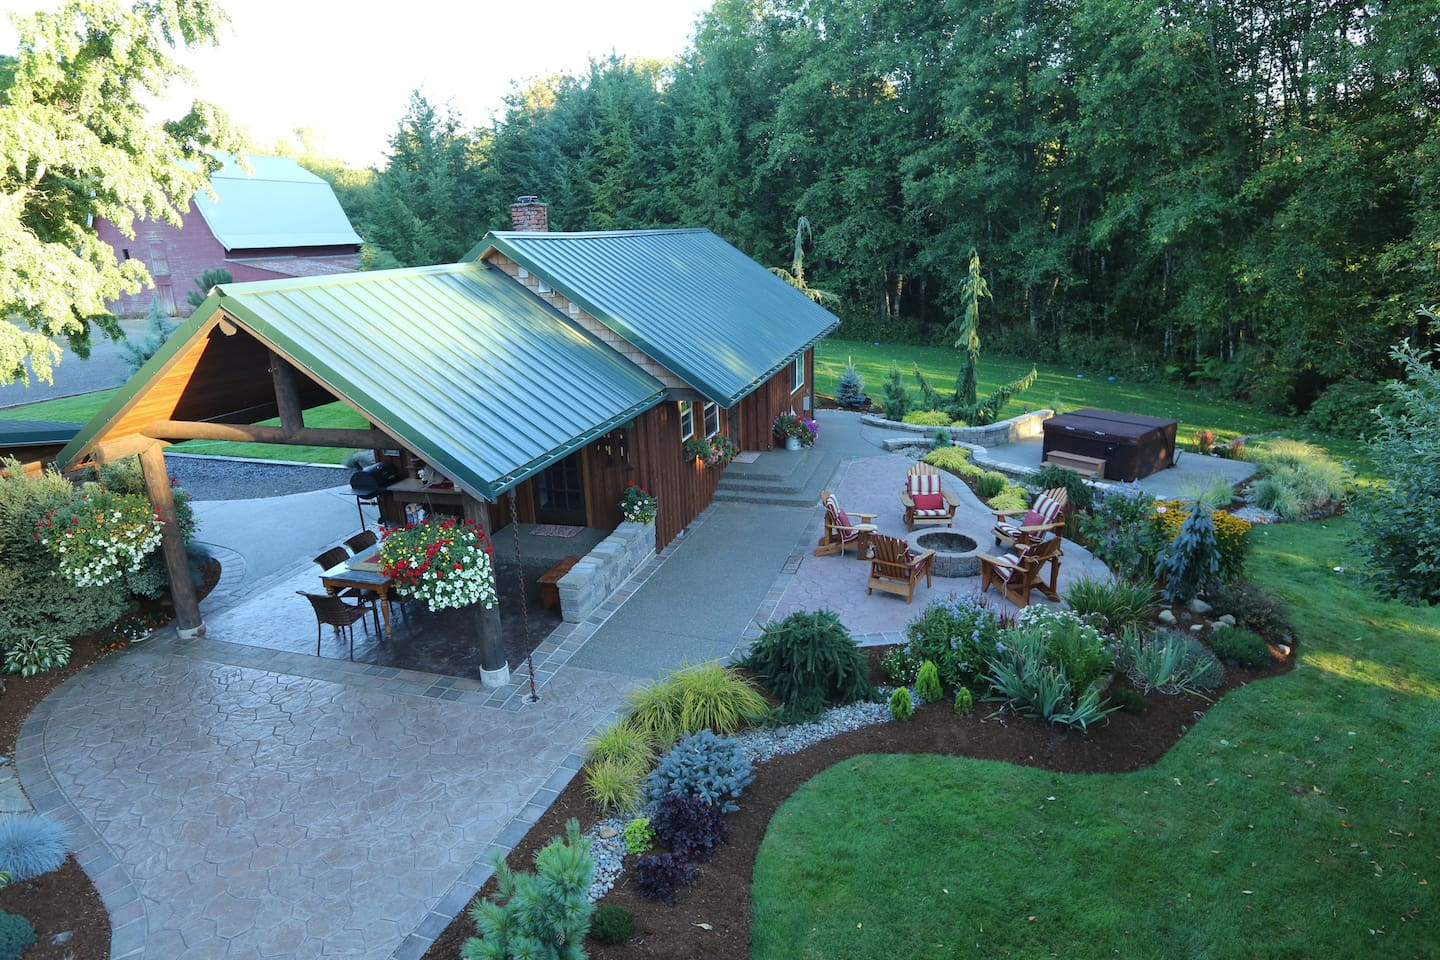 Overview of cabin and some landscaping